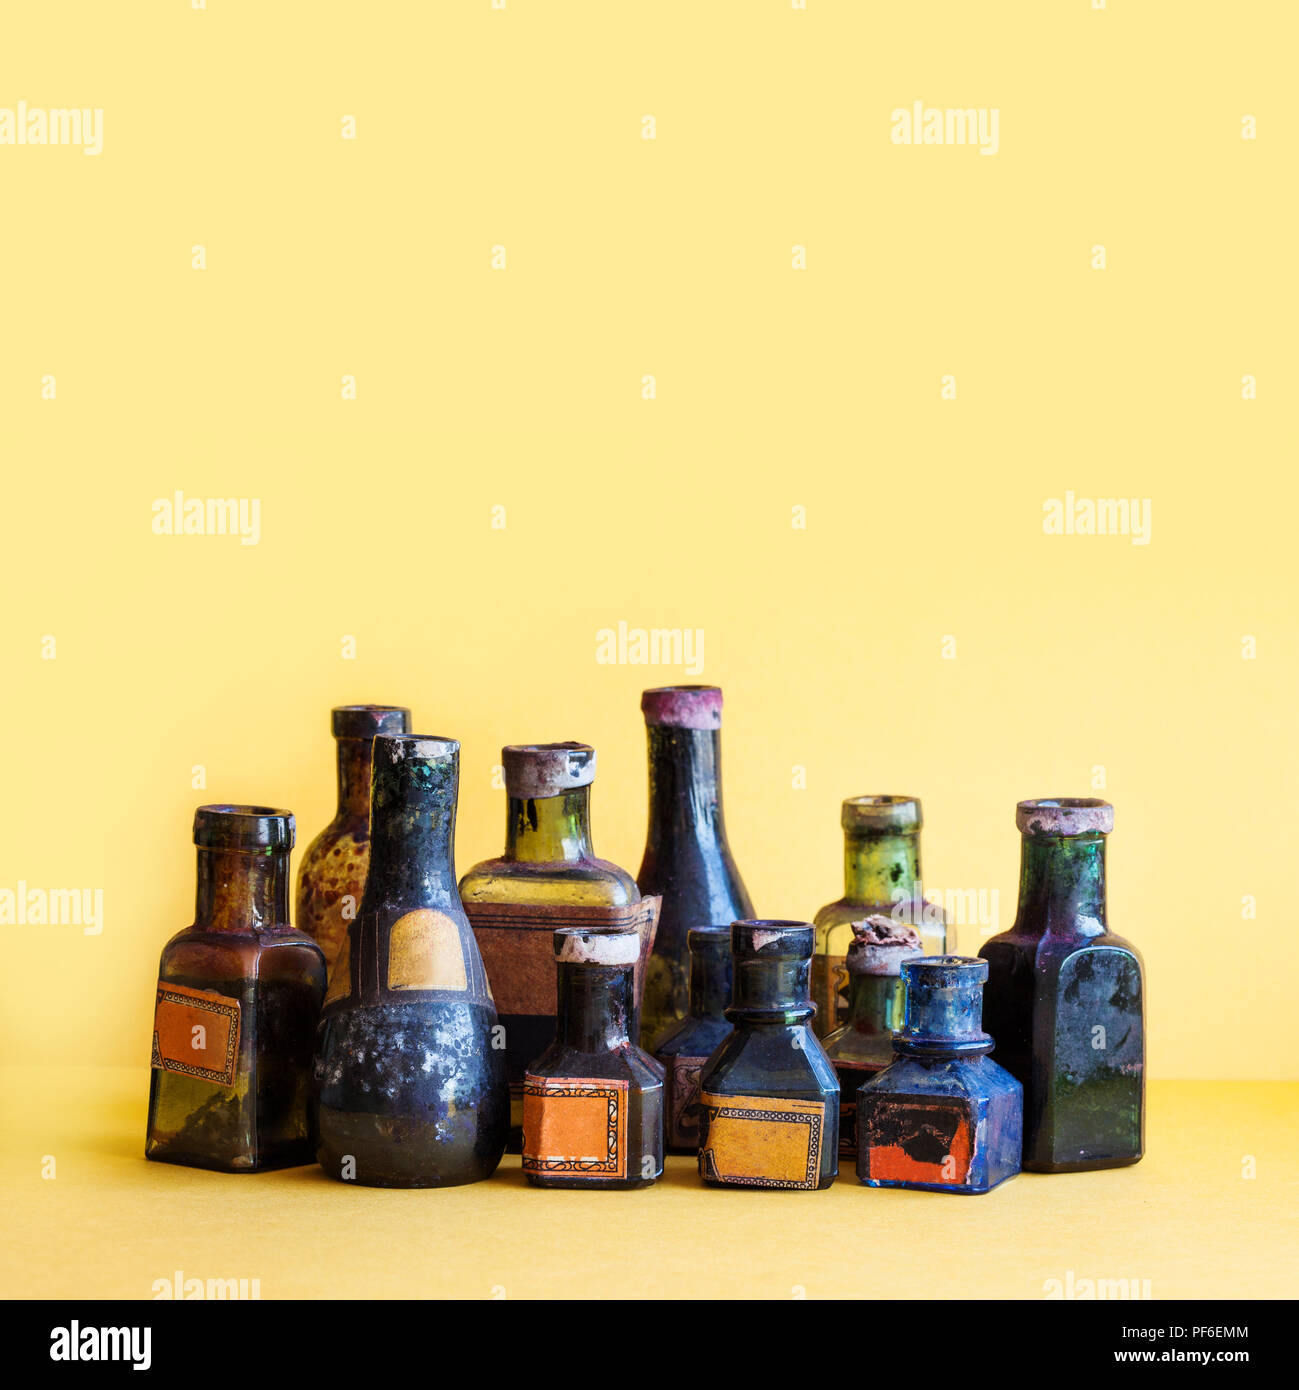 Vintage bottles close-up. Colorful dirty glass flacon set. Soft yellow background, shallow depth of field. copy space - Stock Image